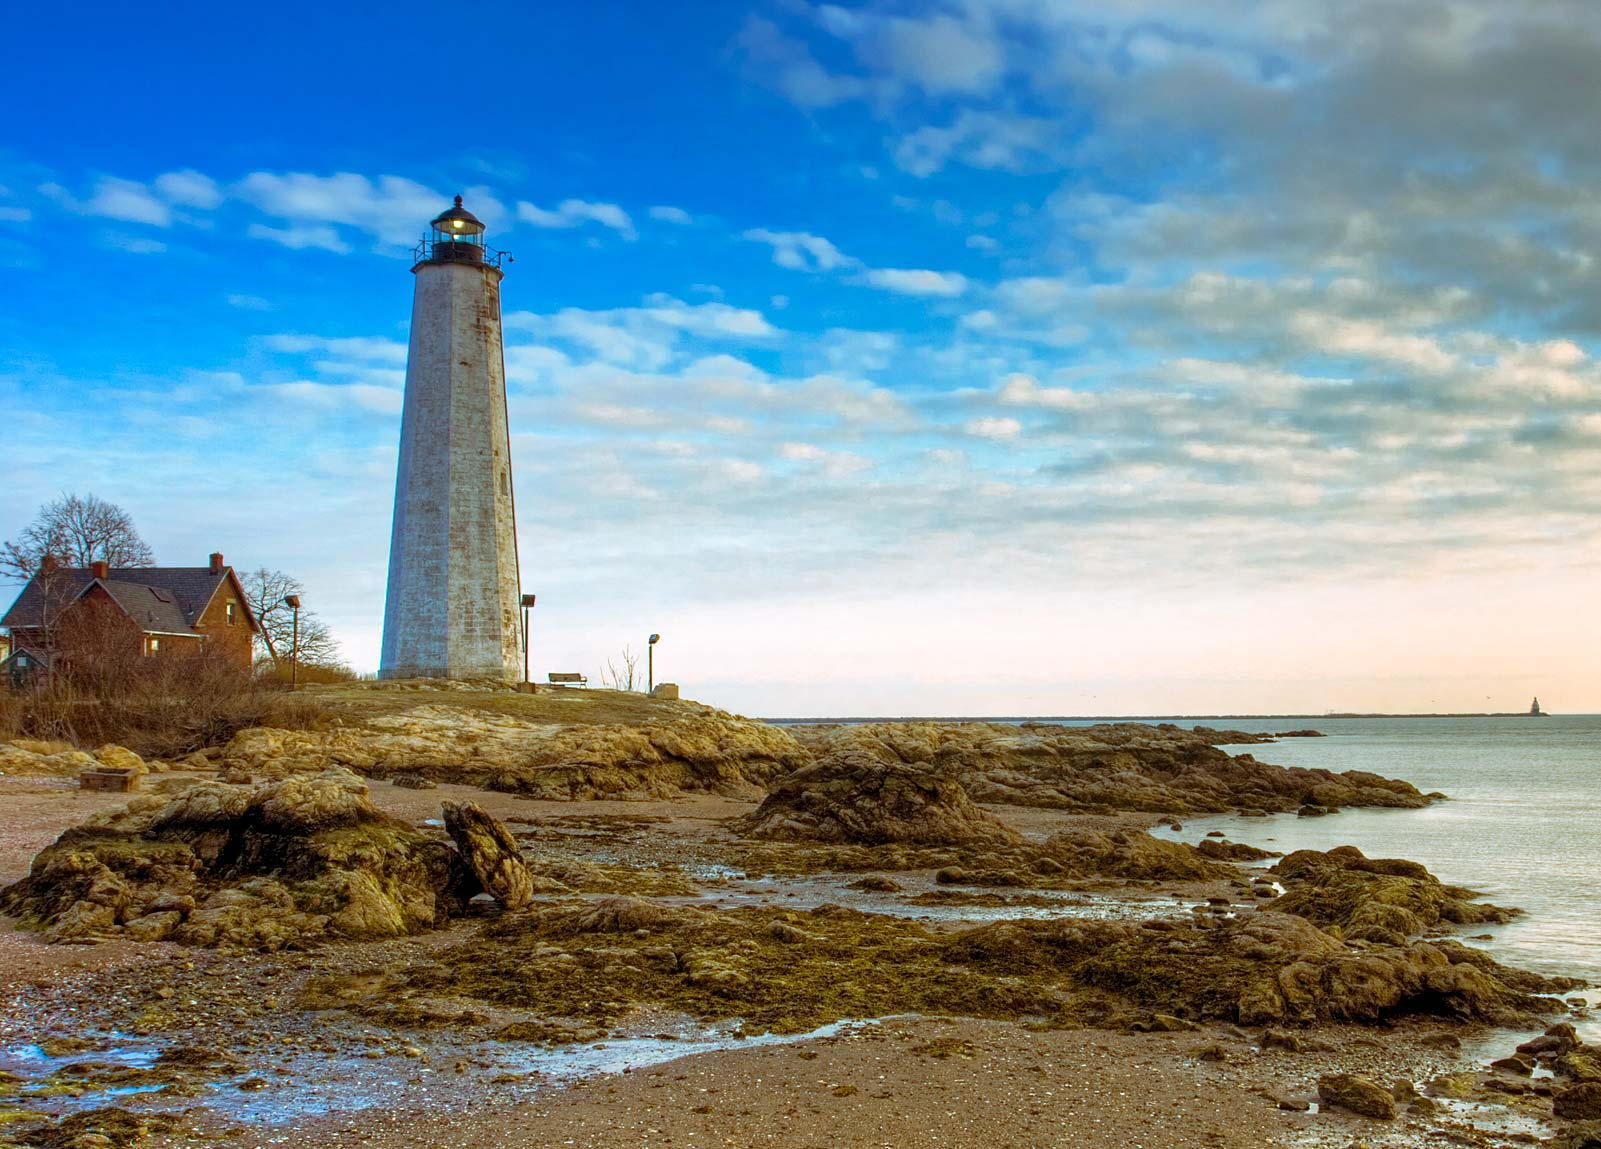 ... of the best New England beaches to enjoying world renowned art museums.